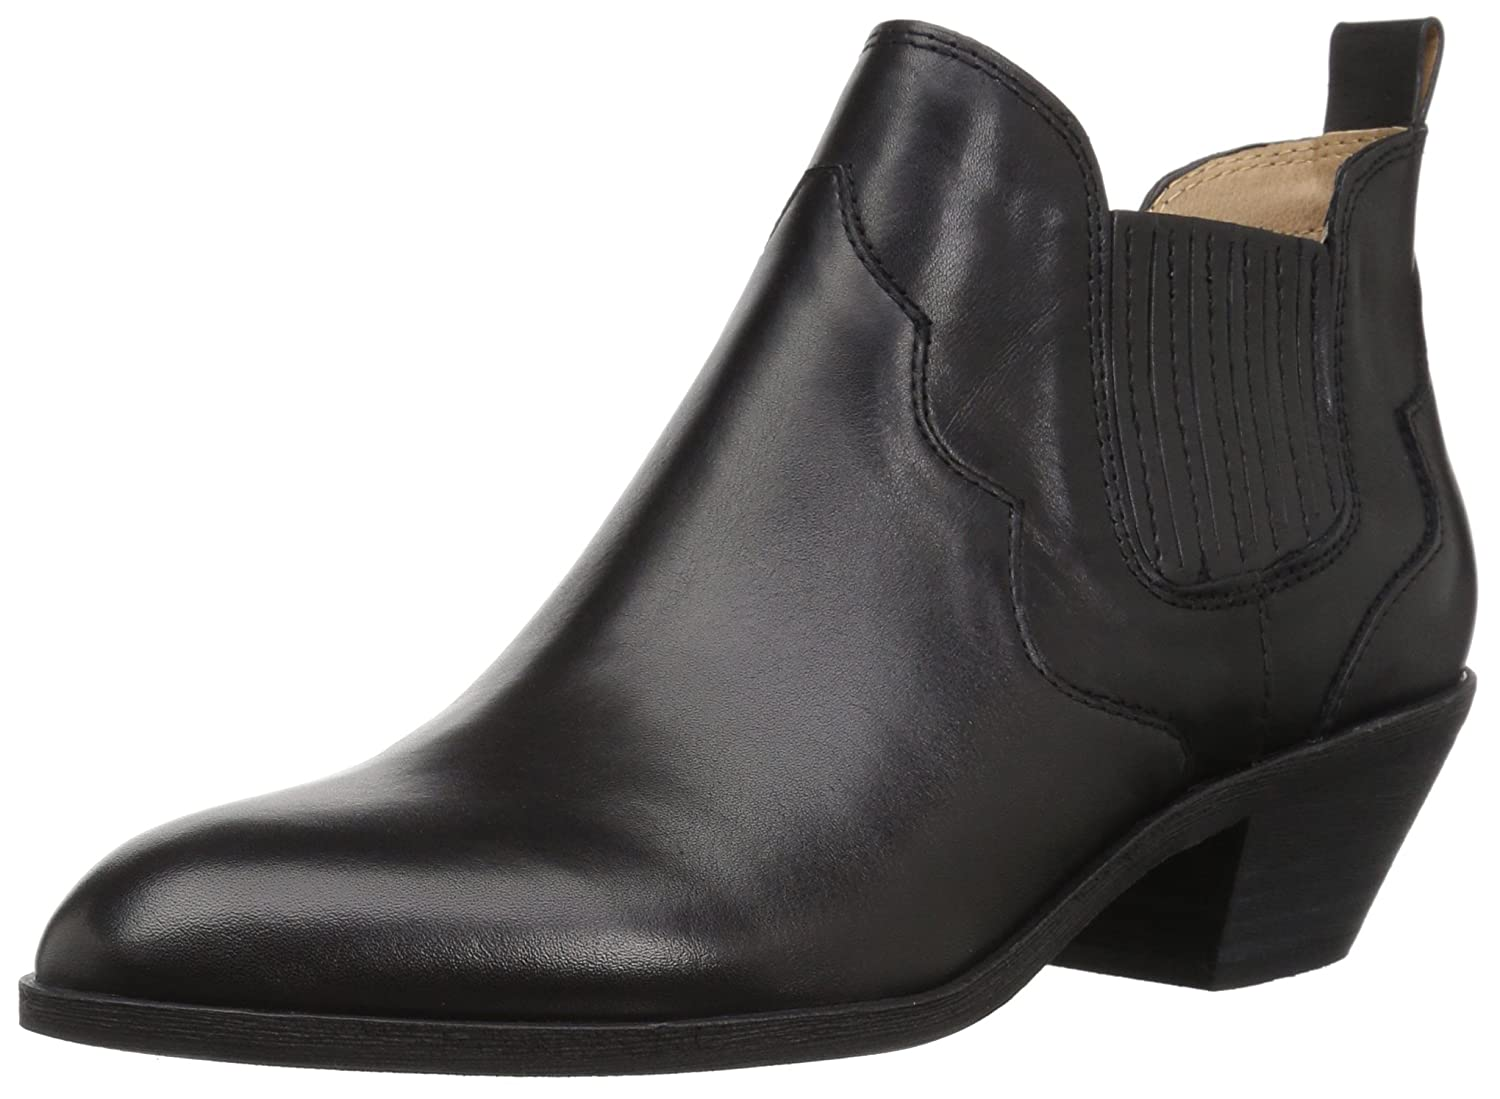 G.H. Bass & Co. Women's Naomi Chelsea Boot B06XRHGFPK 9 B(M) US|Black 1